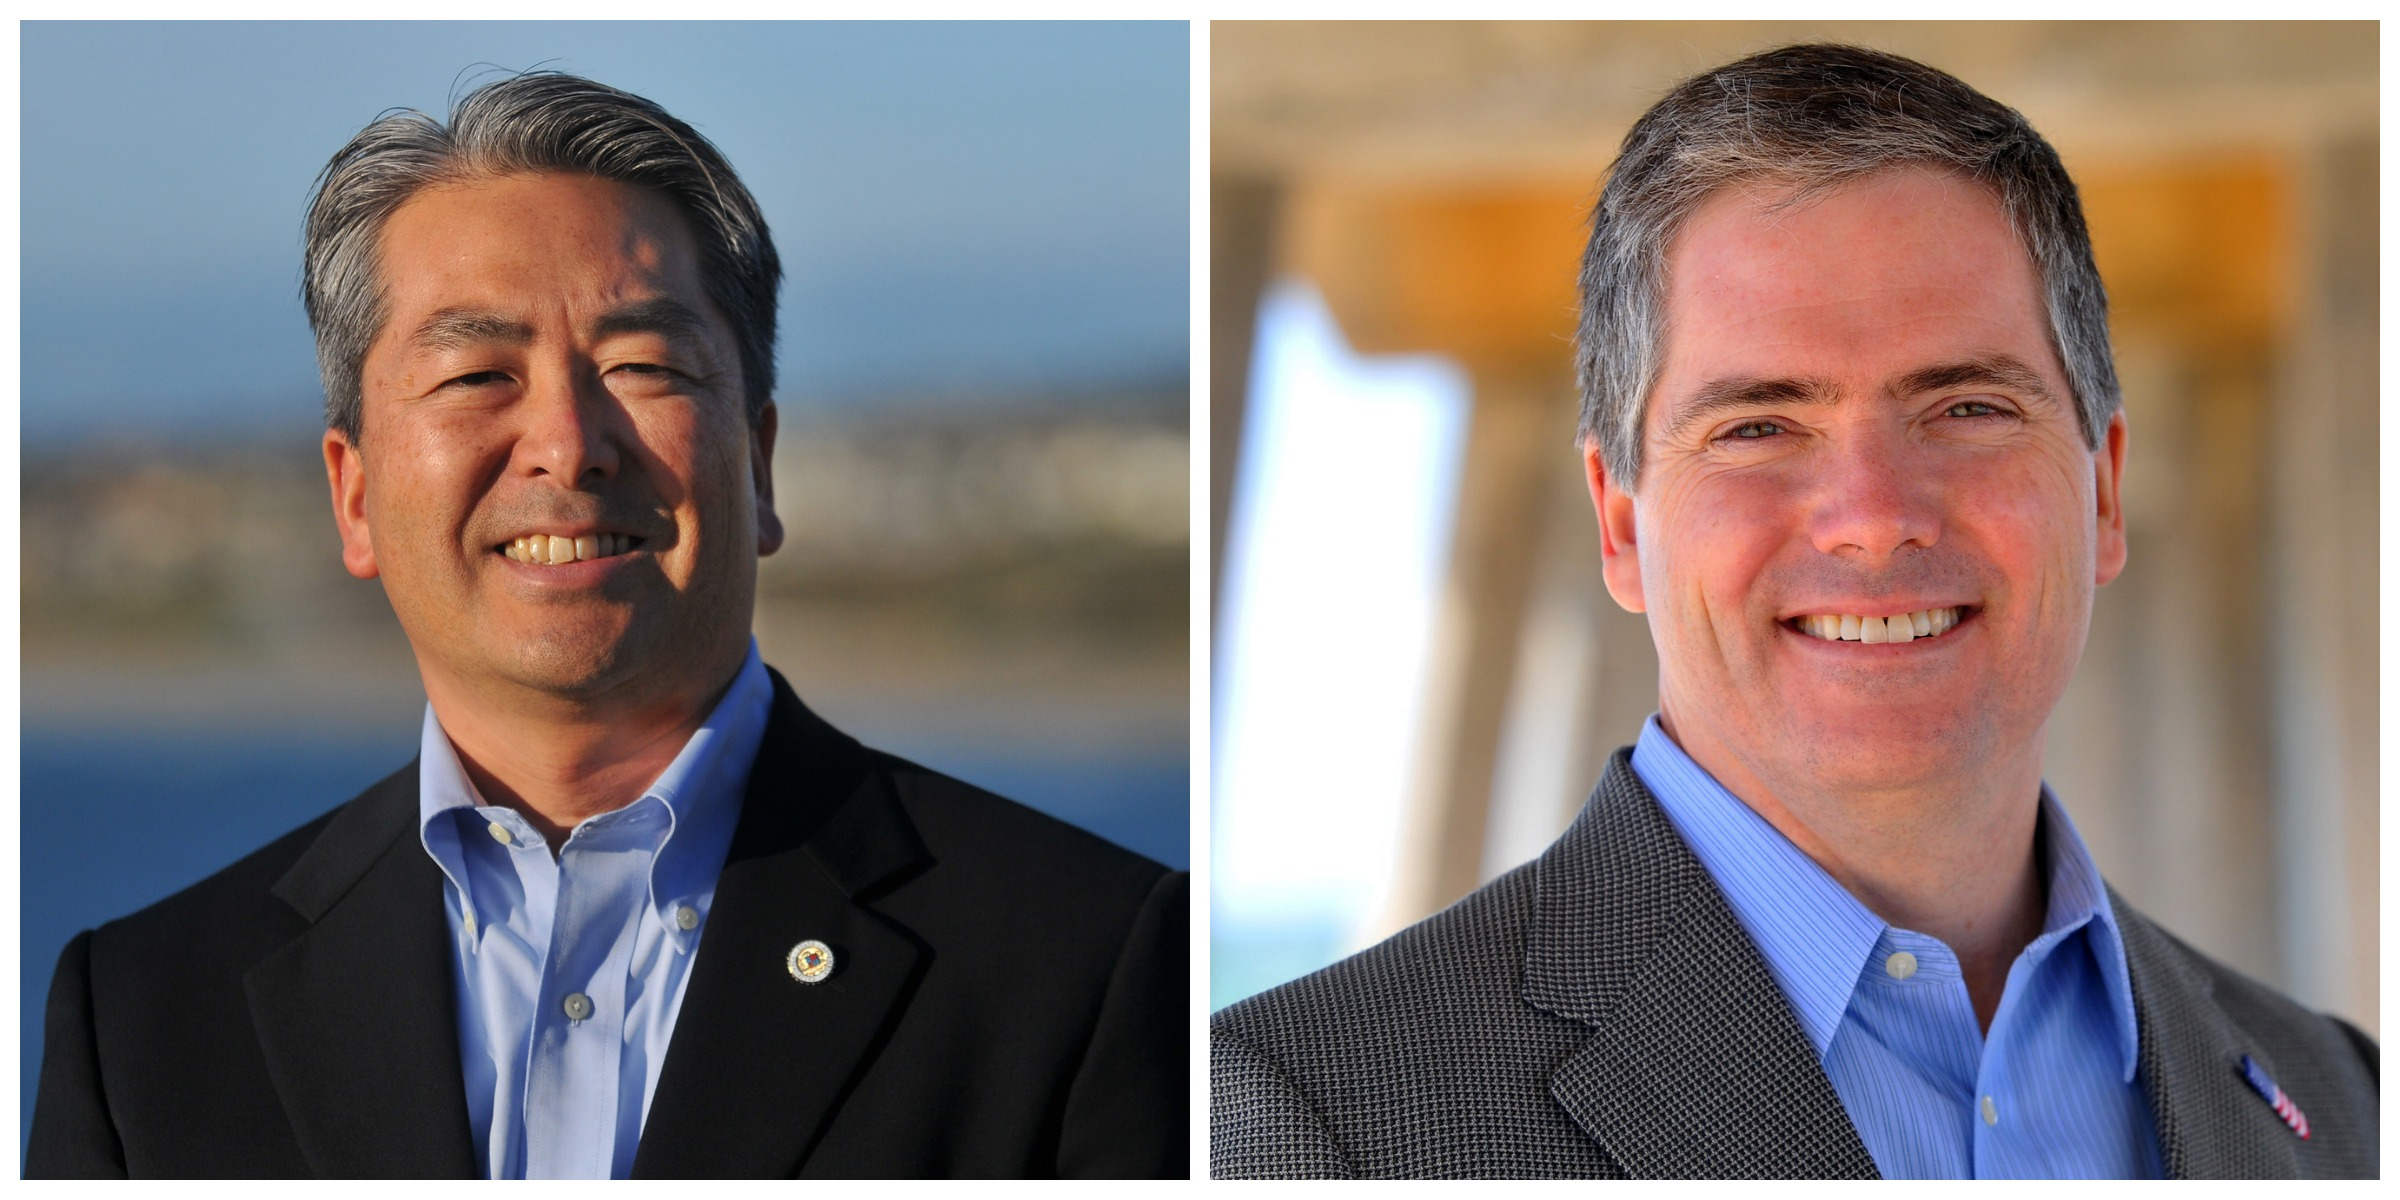 Incumbent Assemblymember Al Muratsuchi (left) will defend his seat against Republican challenger David Hadley this November.